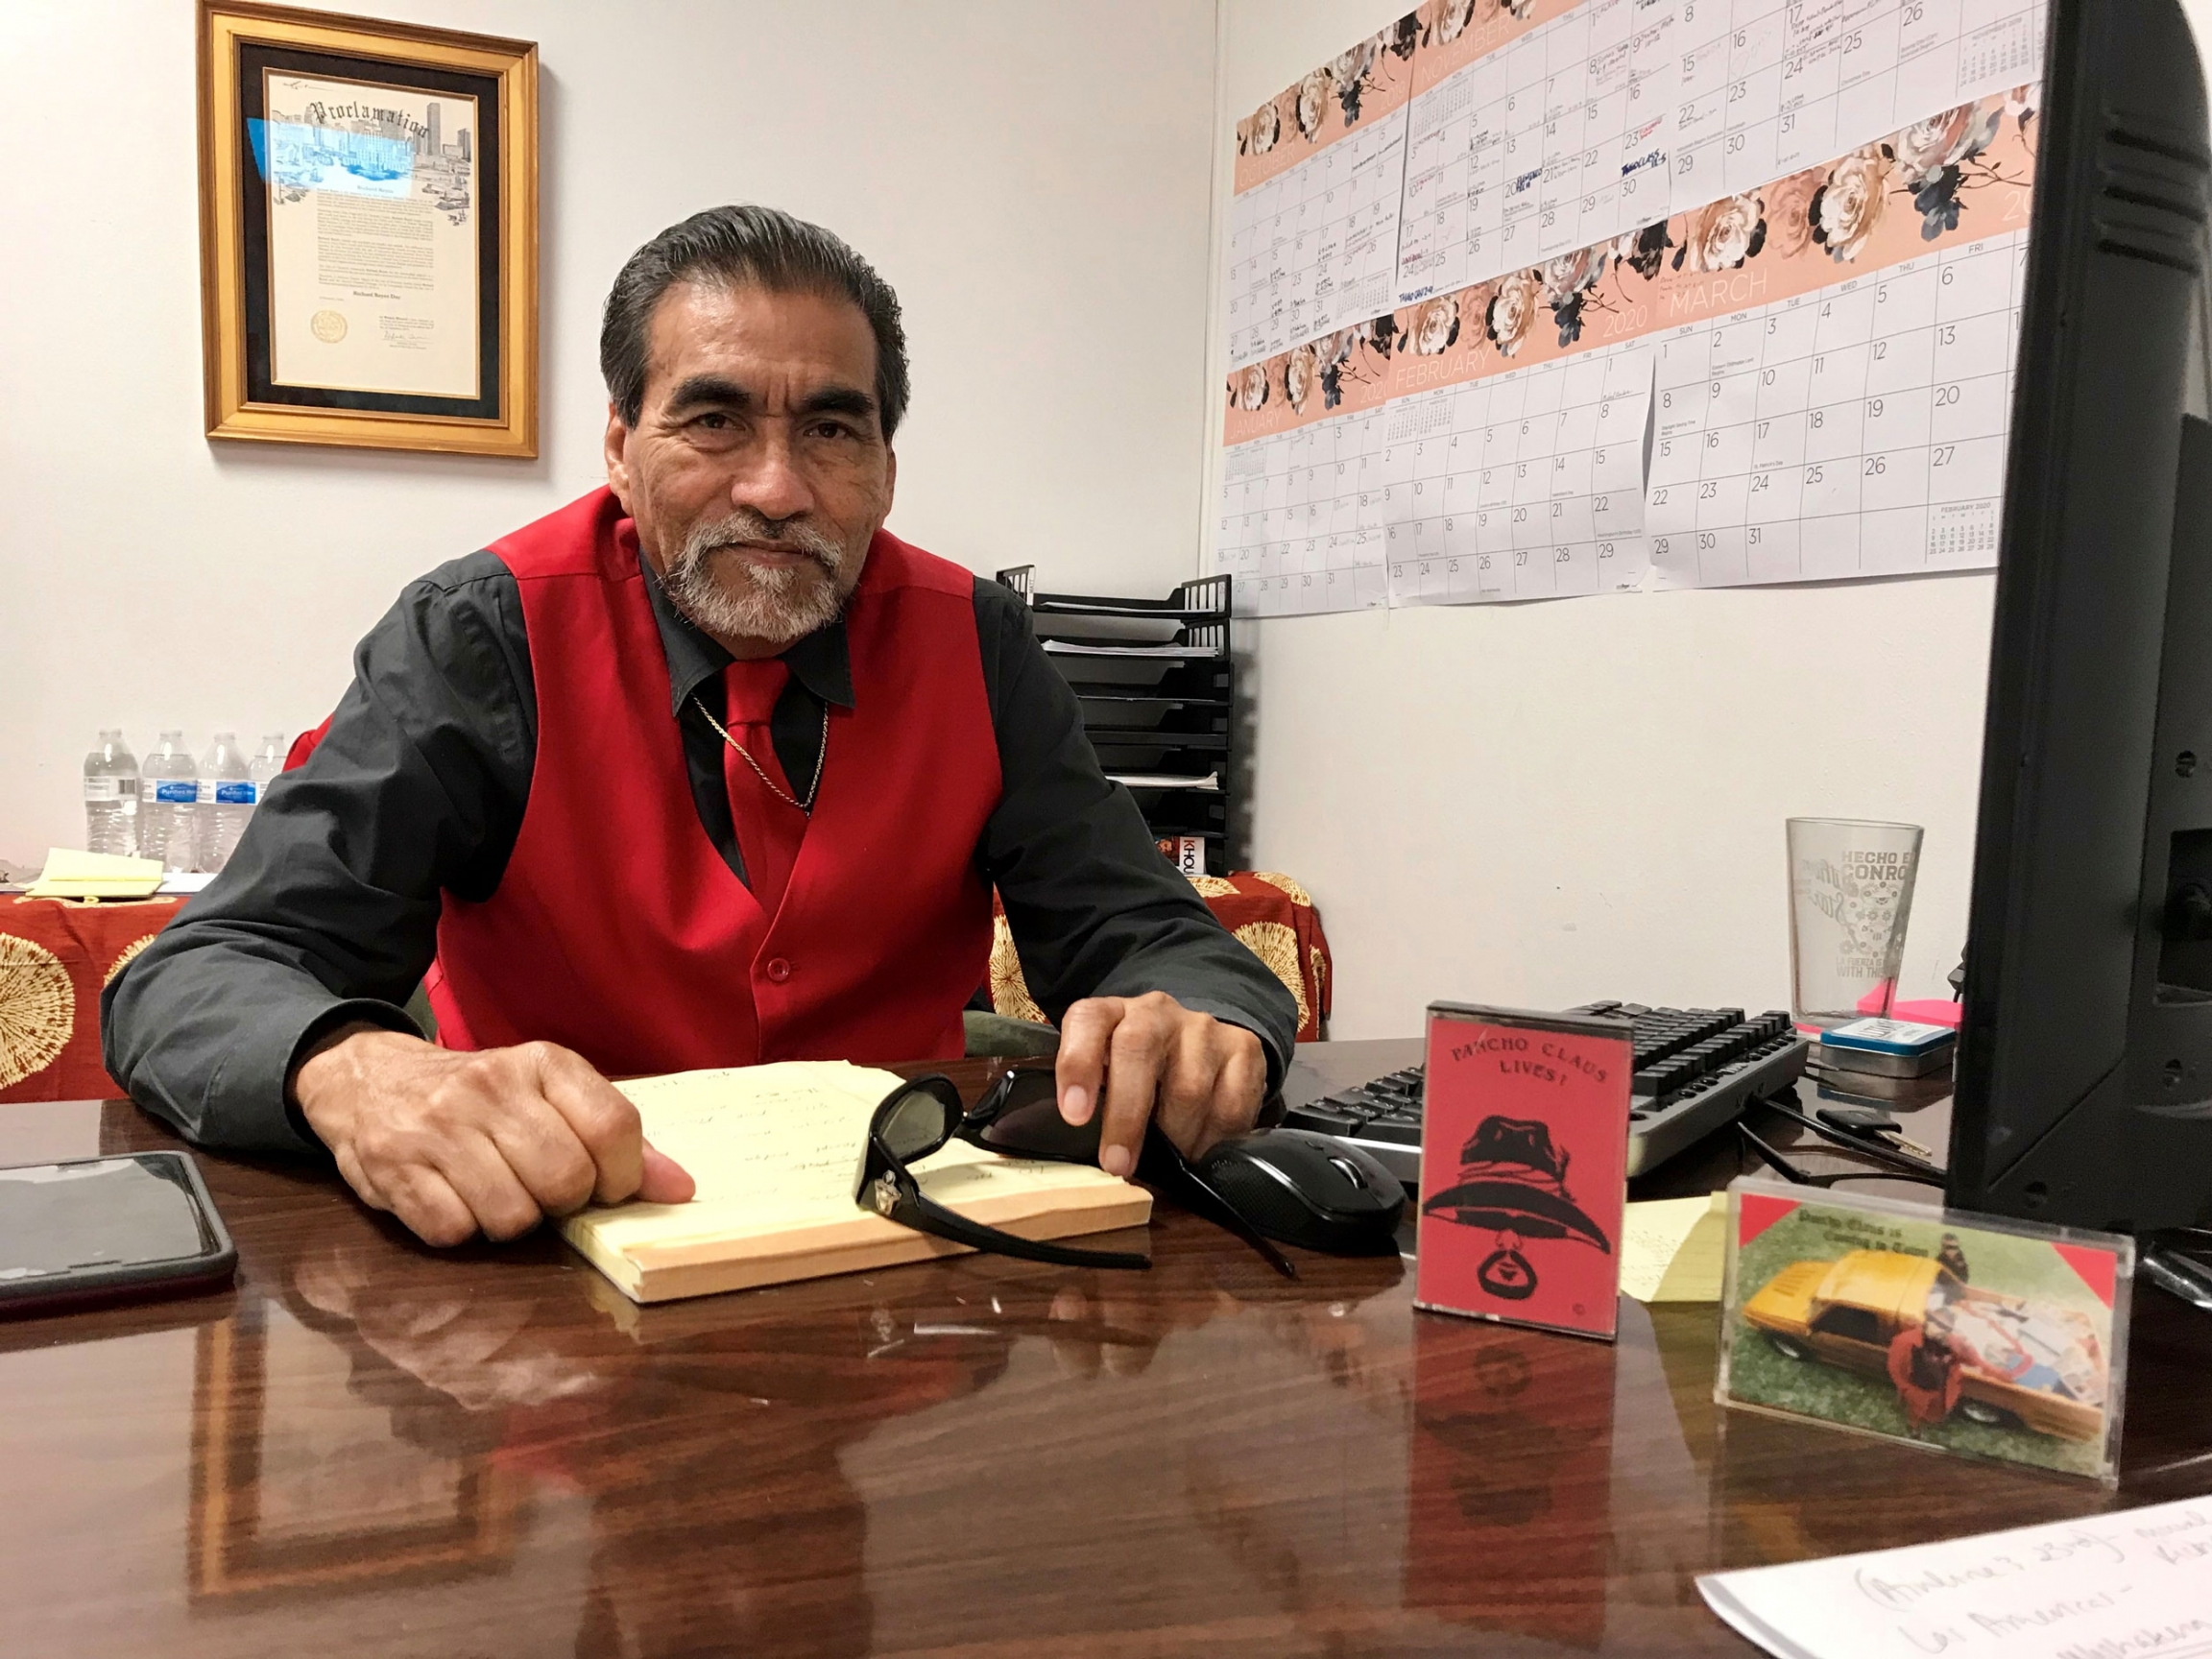 Richard Reyes is shown wearing a red vest and tie while sitting at his desk